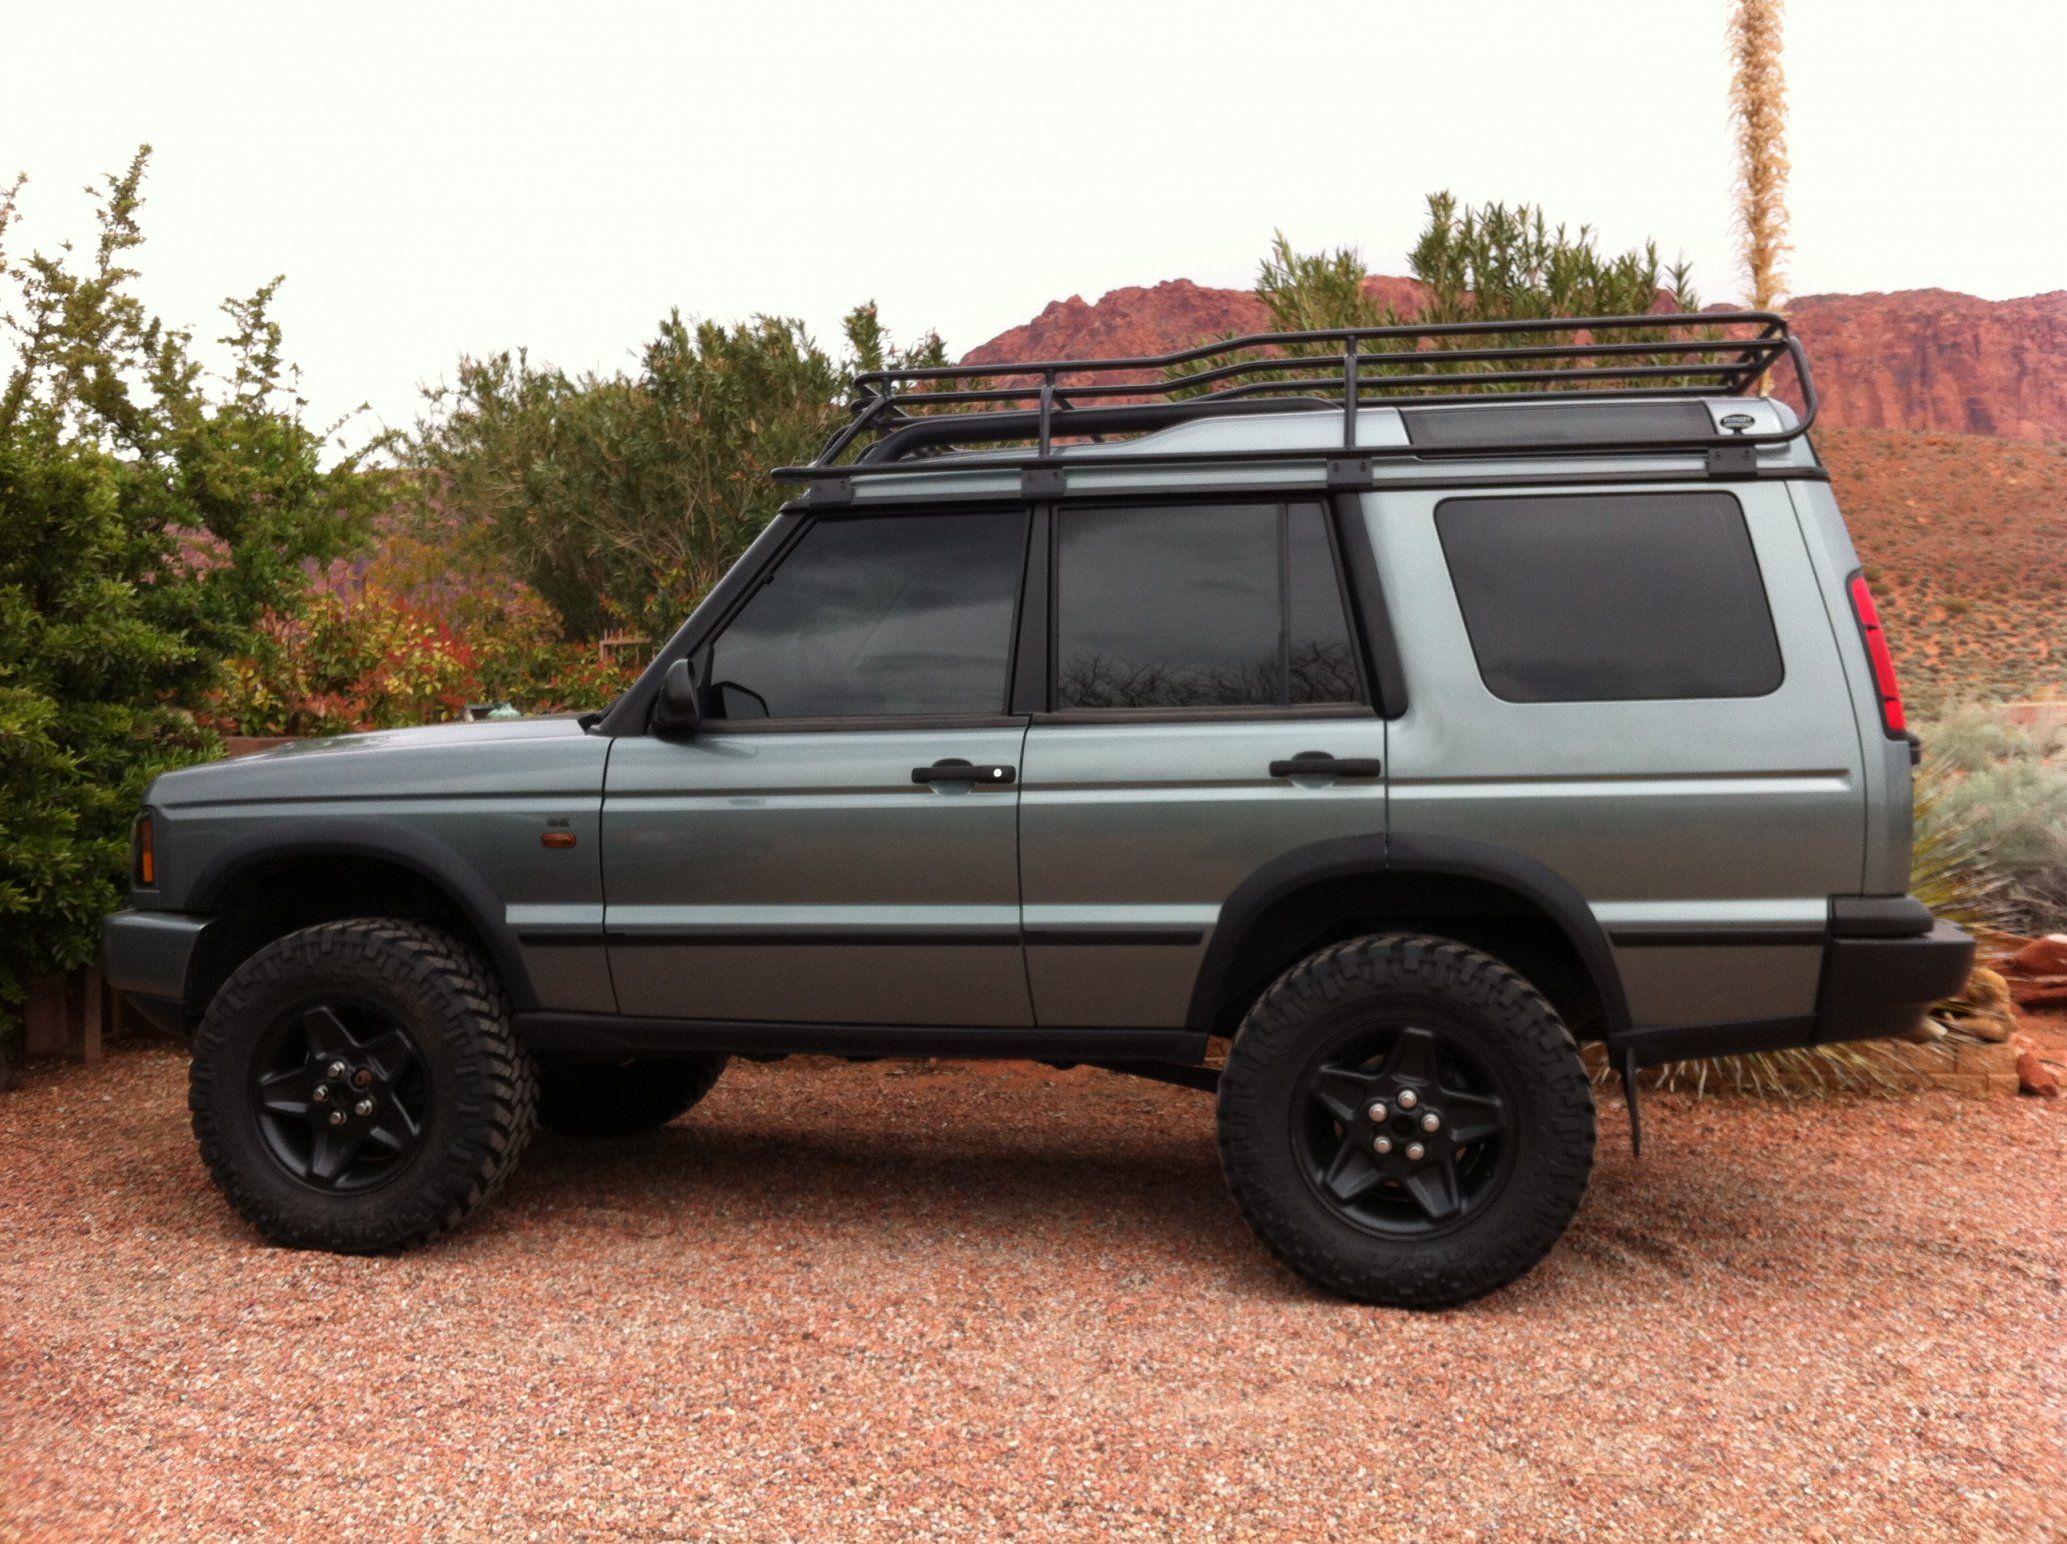 Land Rover Lifted >> 2004 Land Rover Discovery Lifted 65k Miles Clean Expedition Portal